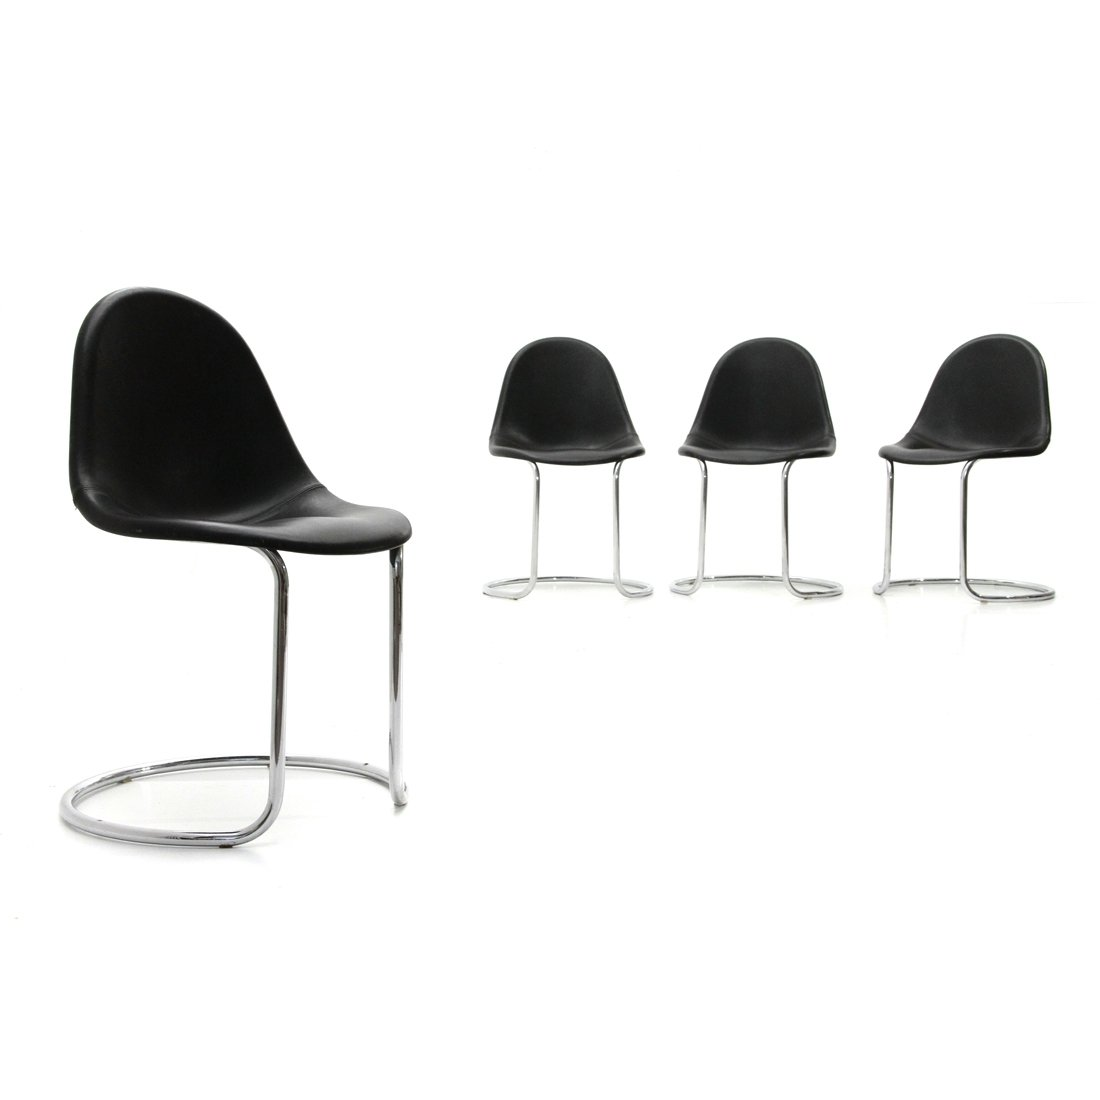 Image of: Set Of 4 Midcentury Modern Maia Leather Dining Chairs By Giotto Stoppino For Bernini 1970s 111971